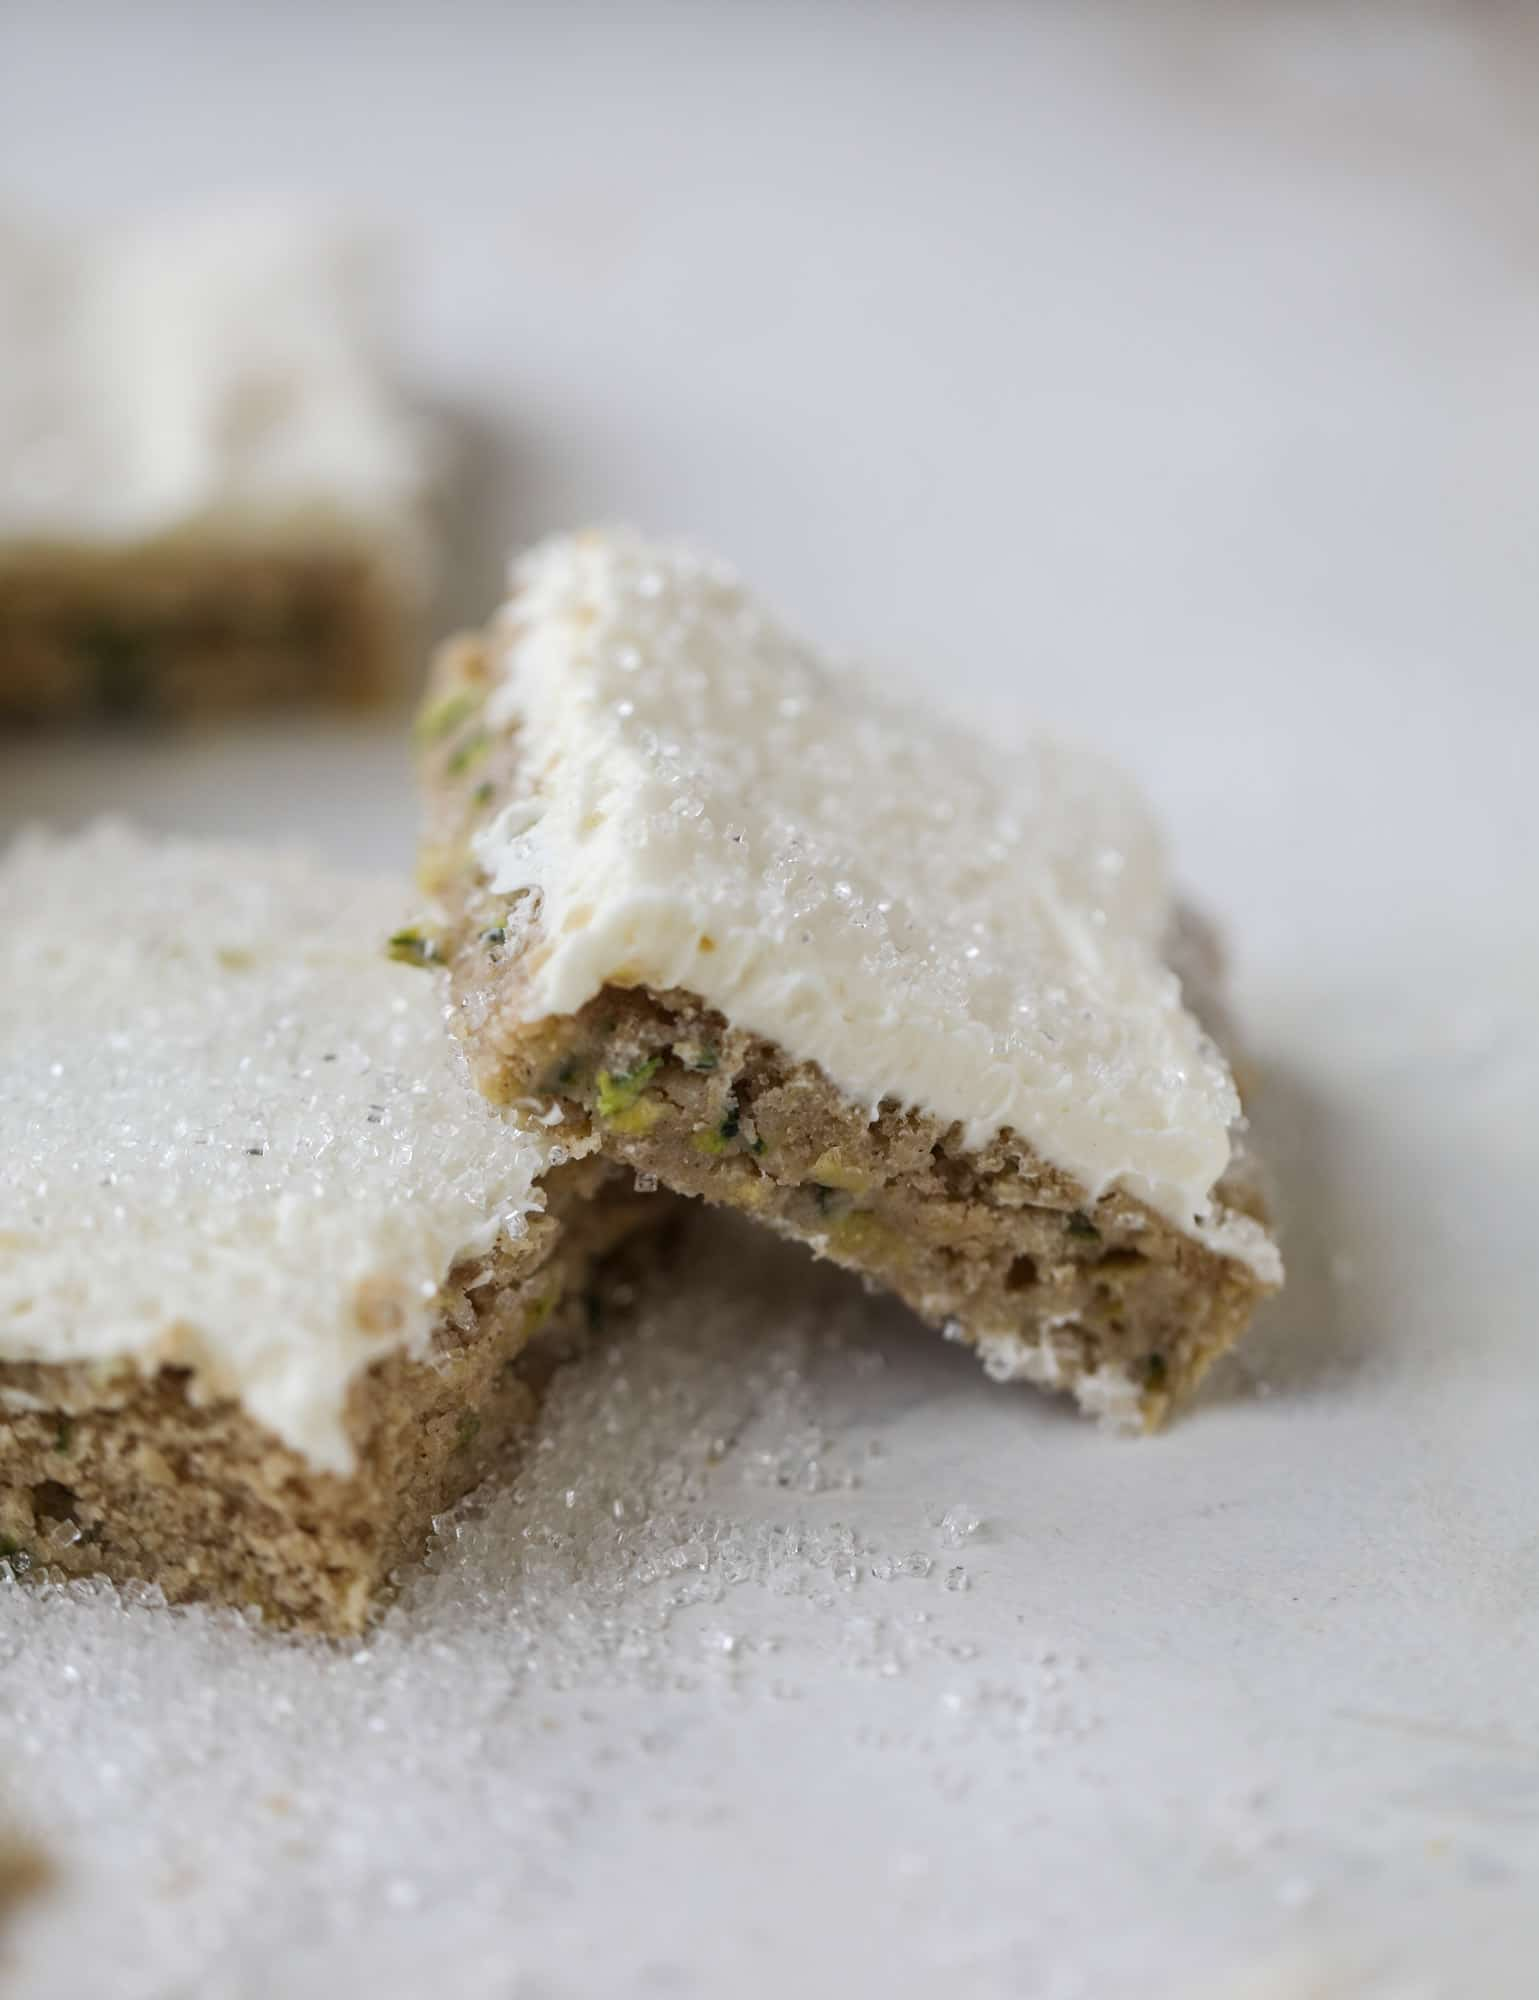 These zucchini bars with cream cheese icing are a fun twist on zucchini bread! Zucchini bars are super easy to make, have a little spice and a lot of flavor, topped with the creamiest cream cheese frosting. Delicious and simple! I howsweeteats.com #zucchini #bars #cream #cheese #icing #dessert